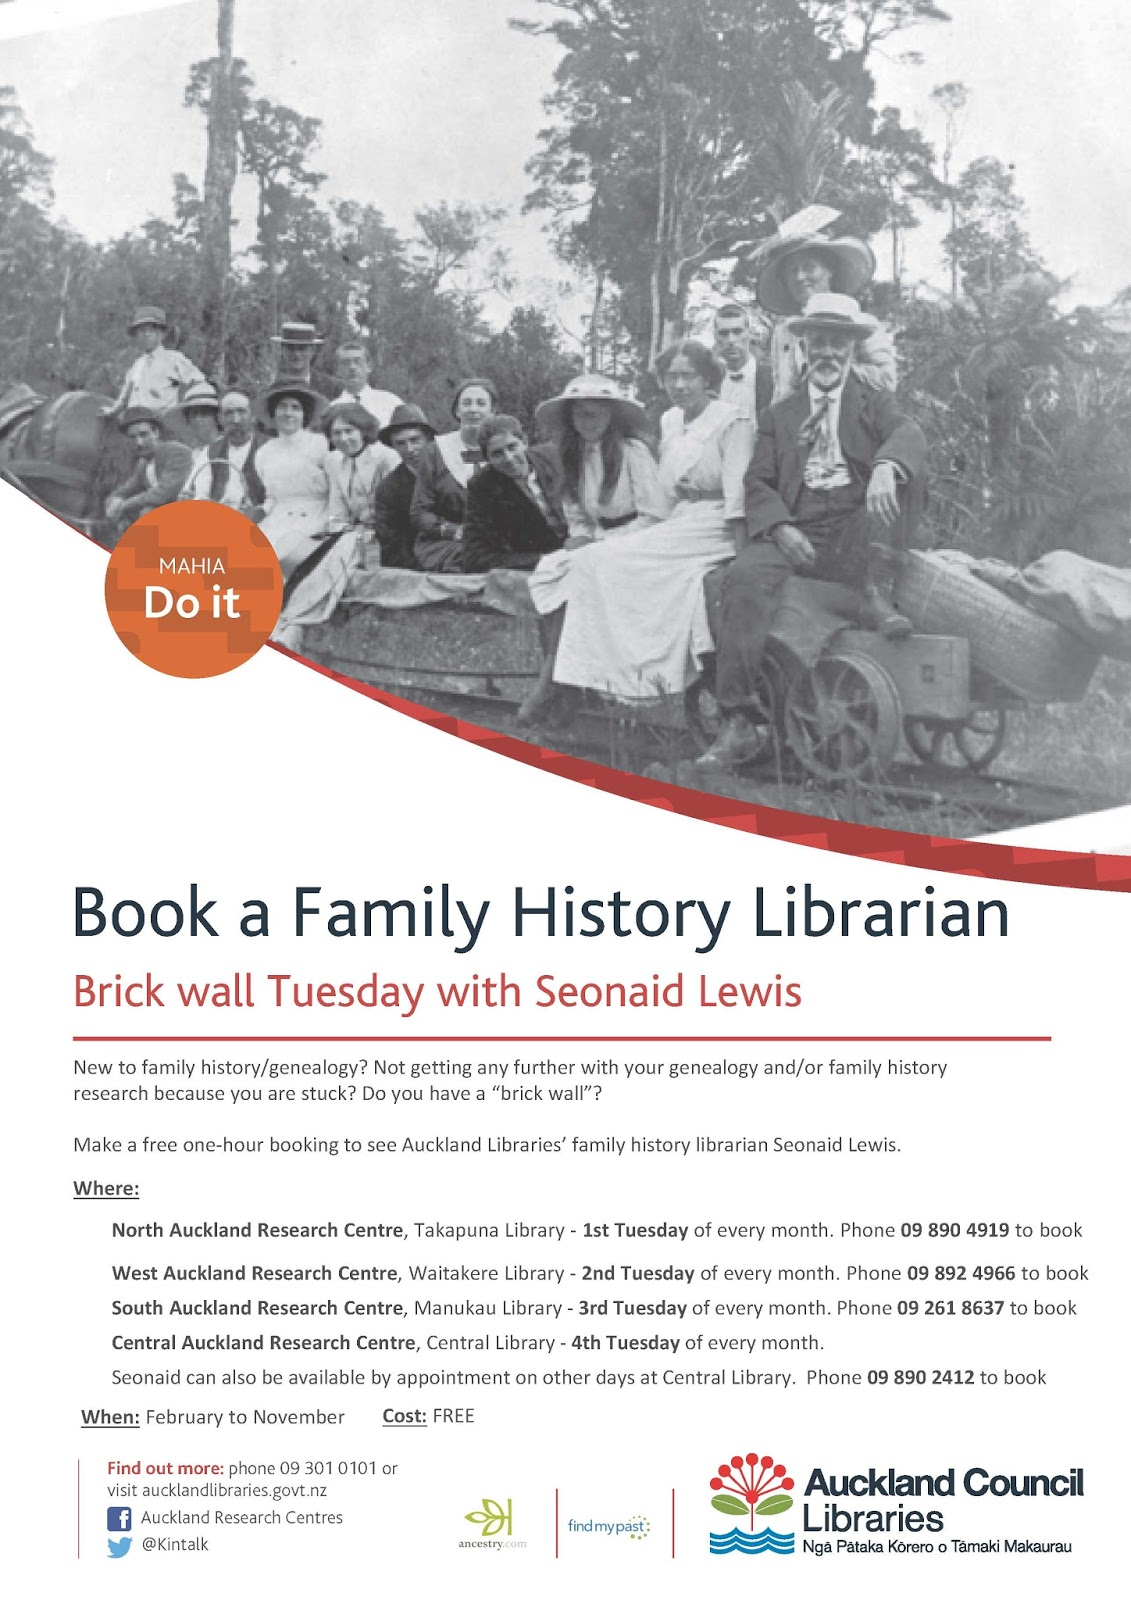 family history research paper Genealogical research forms free, downloadable forms online  midwest genealogy center: family history forms (can be filled in, then printed)  ancestrycom charts & forms to download and print.